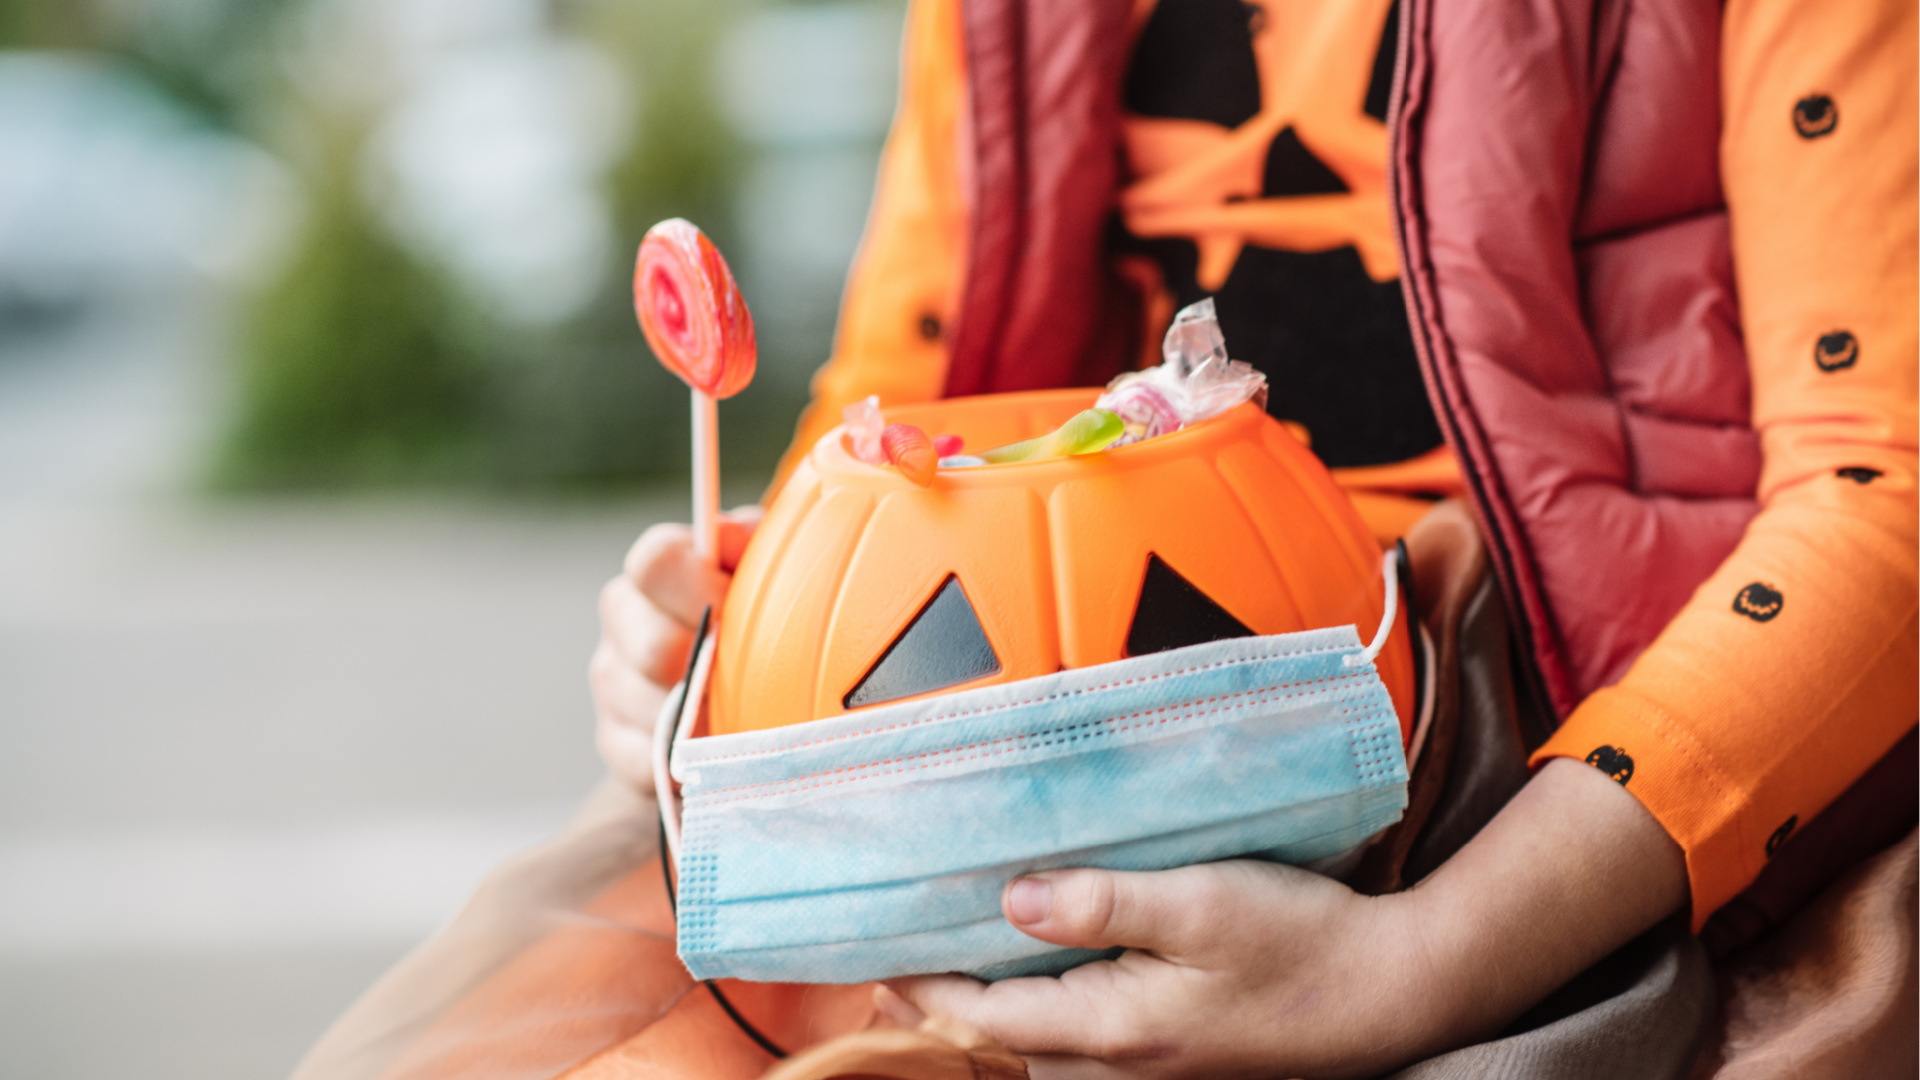 Halloween Trunk Or Treat 2020 Wv Town of Sophia to acknowledge Halloween with Trunk or Treat | WVNS